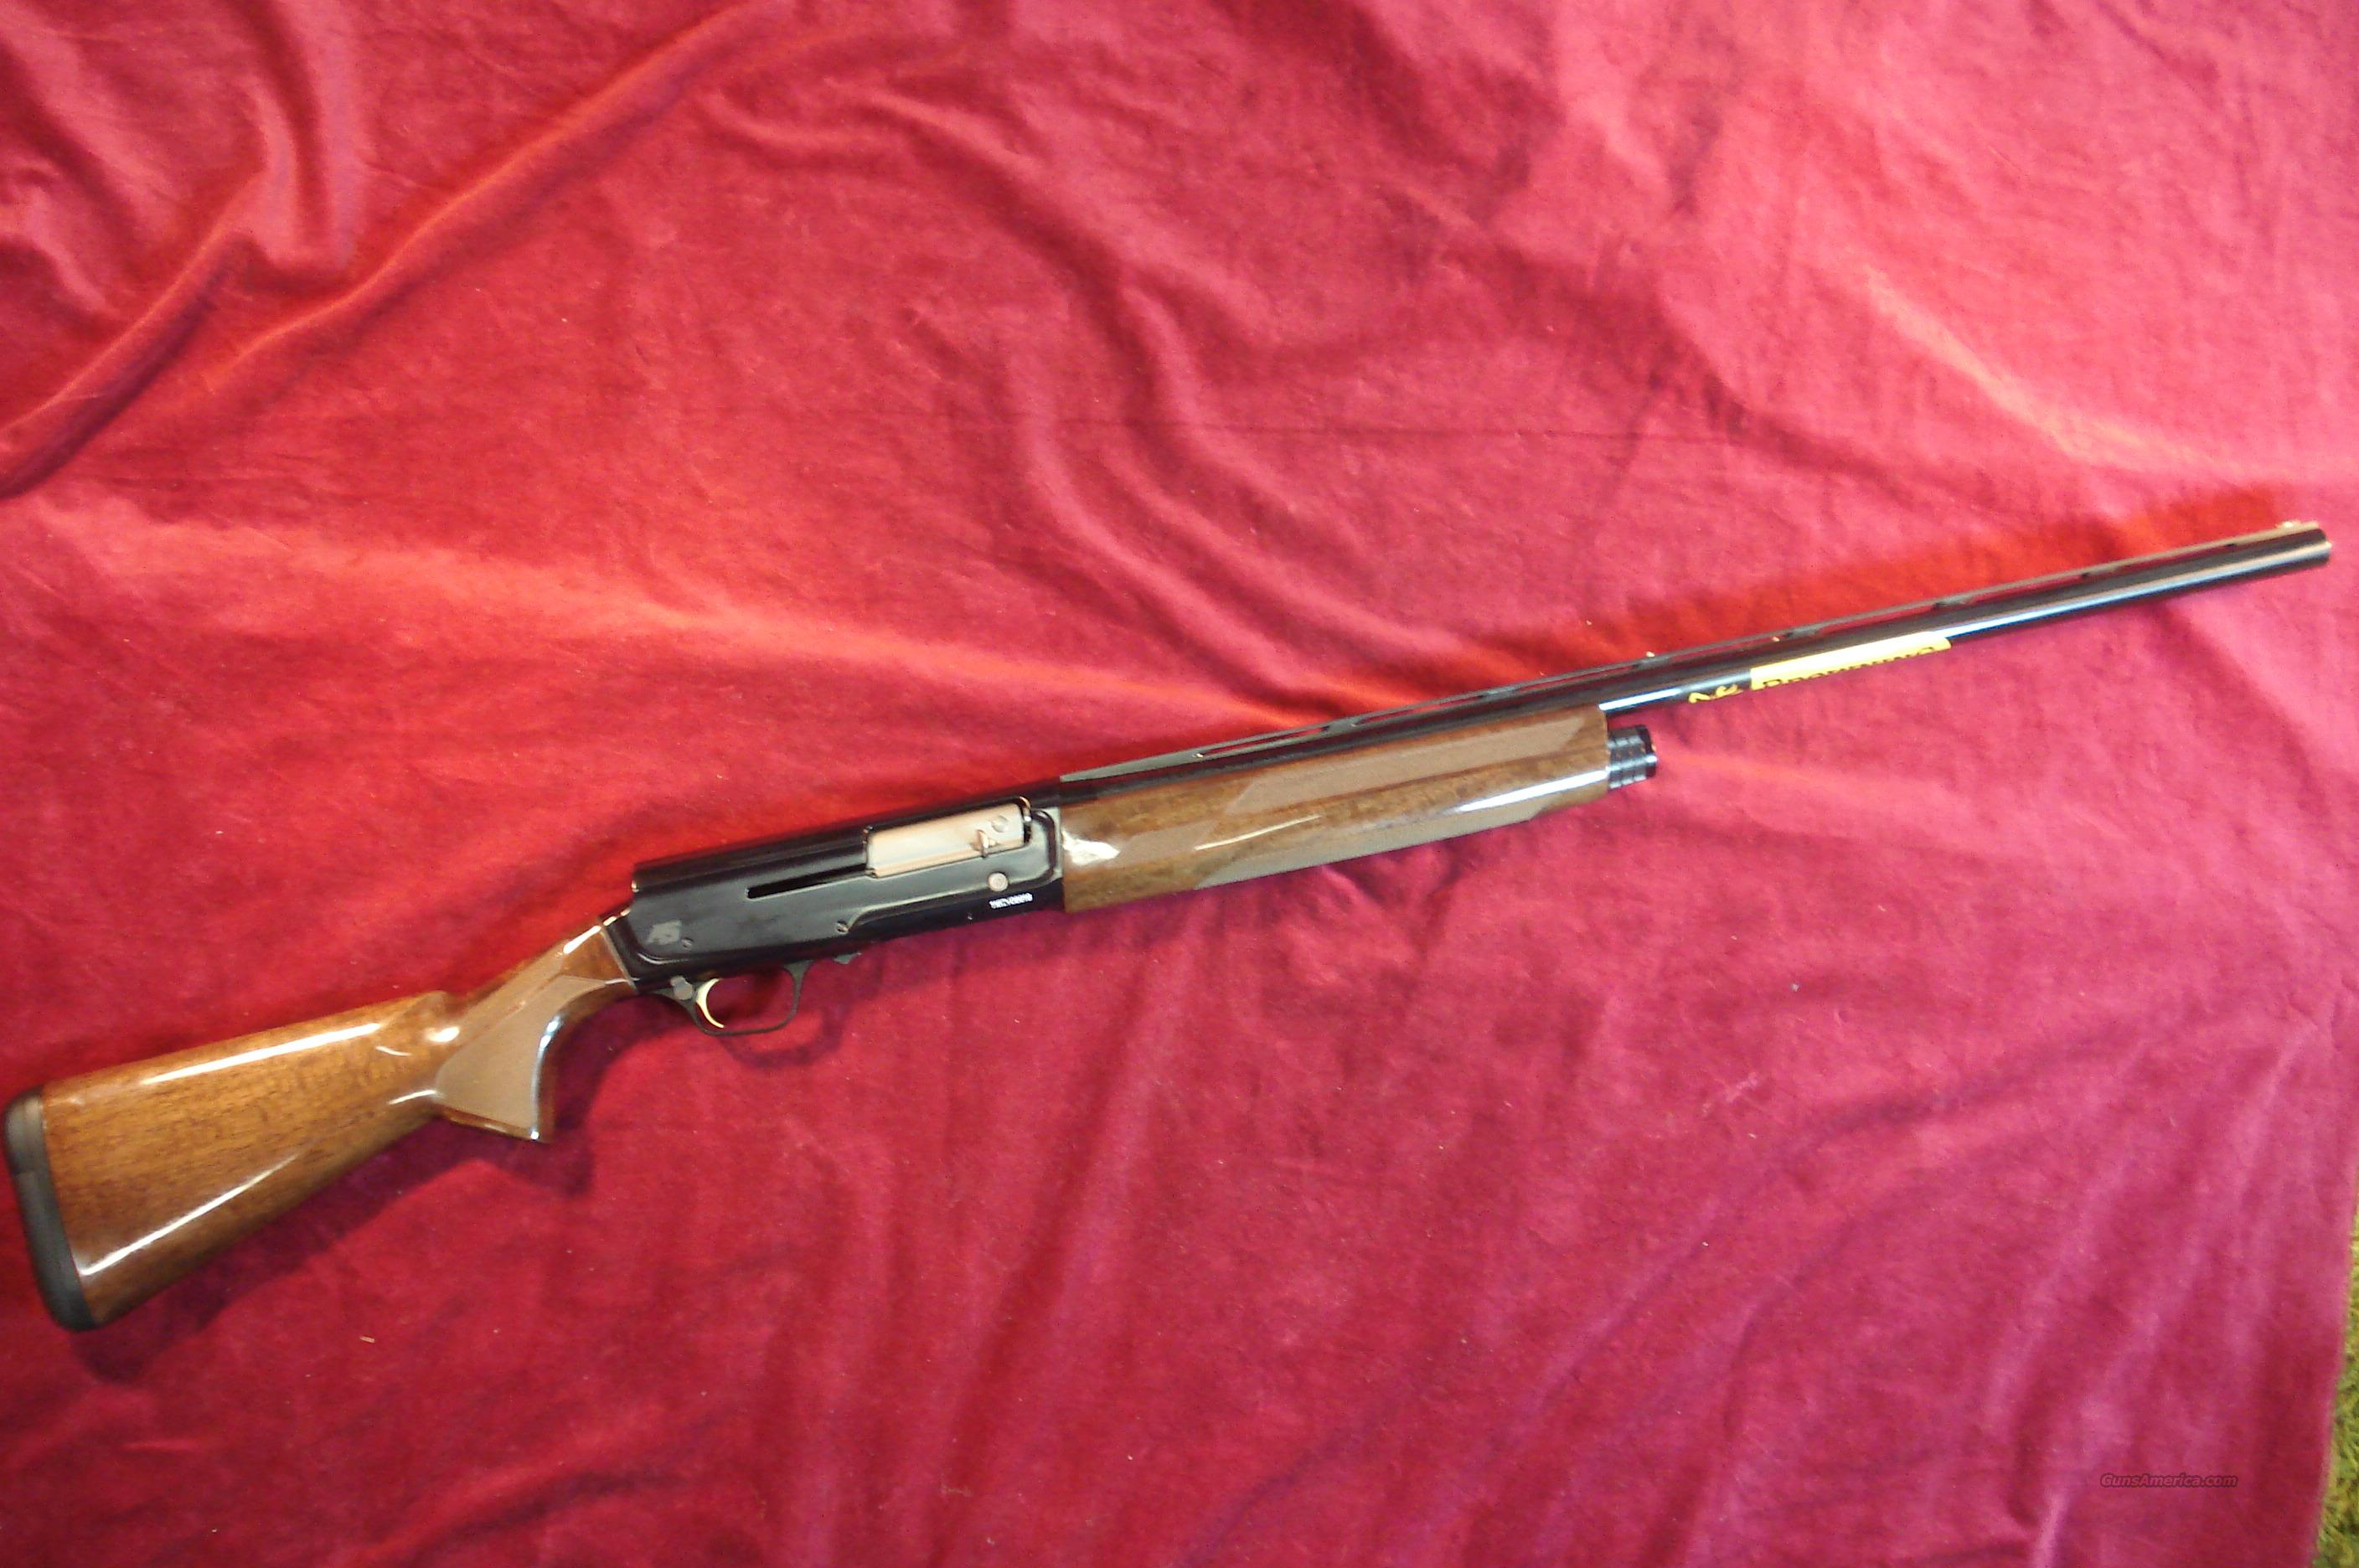 "BROWNING A5 HUNTER 12 GA 3"" CHAMBER 28"" BARREL NEW  Guns > Shotguns > Browning Shotguns > Autoloaders > Hunting"